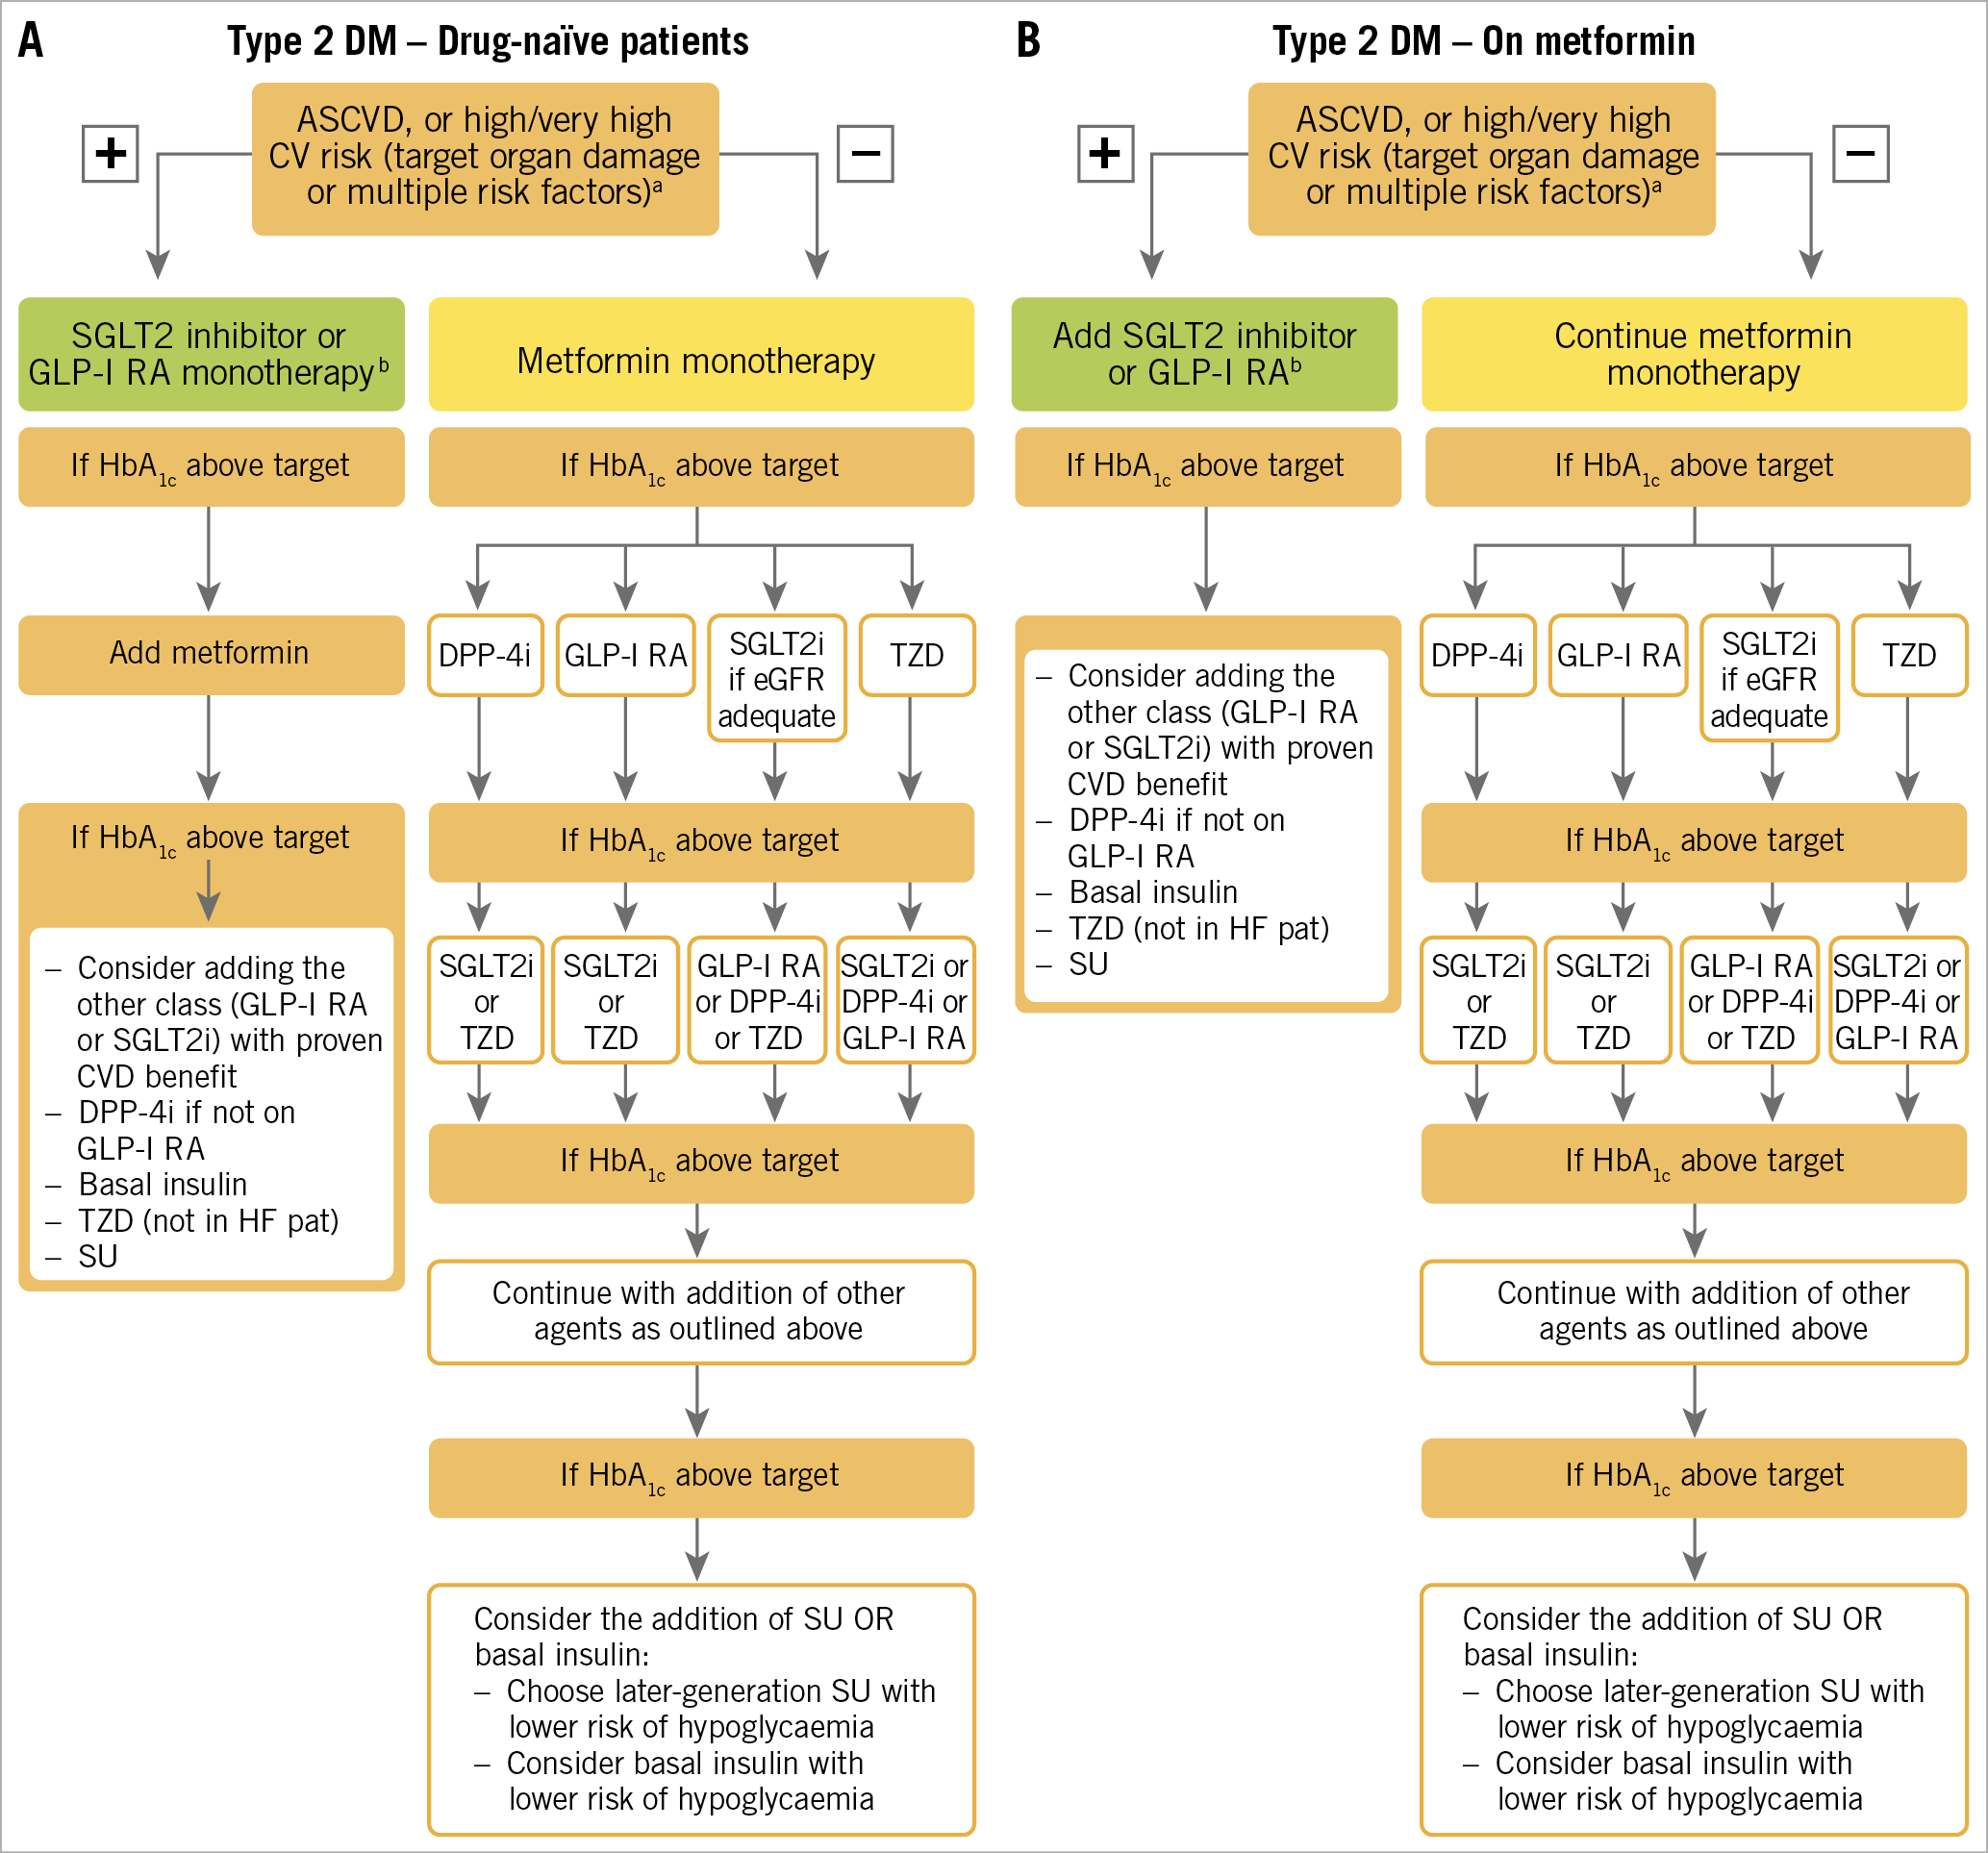 Figure 3. Treatment algorithm in patients with T2DM and ASCVD or high/very high CV risk. A) Drug-naïve patients. B) Metformin-treated patients. Treatment algorithm proposed by the 2019 ESC guidelines on CVD, pre-DM and DM, reproduced from reference 18 with permission from Oxford University Press on behalf of the European Society of Cardiology. ASCVD: atherosclerotic cardiovascular disease; CV: cardiovascular; CVD: cardiovascular disease; DPP4i: dipeptidyl peptidase-4 inhibitor; eGFR: estimated glomerular filtration rate; GLP1-RA: glucagon-like peptide-1 receptor agonist; HbA1c: haemoglobin A1c; SGLT2i: sodium-glucose co-transporter-2 inhibitor; T2DM: type 2 diabetes mellitus; TZD: thiazolidinedion